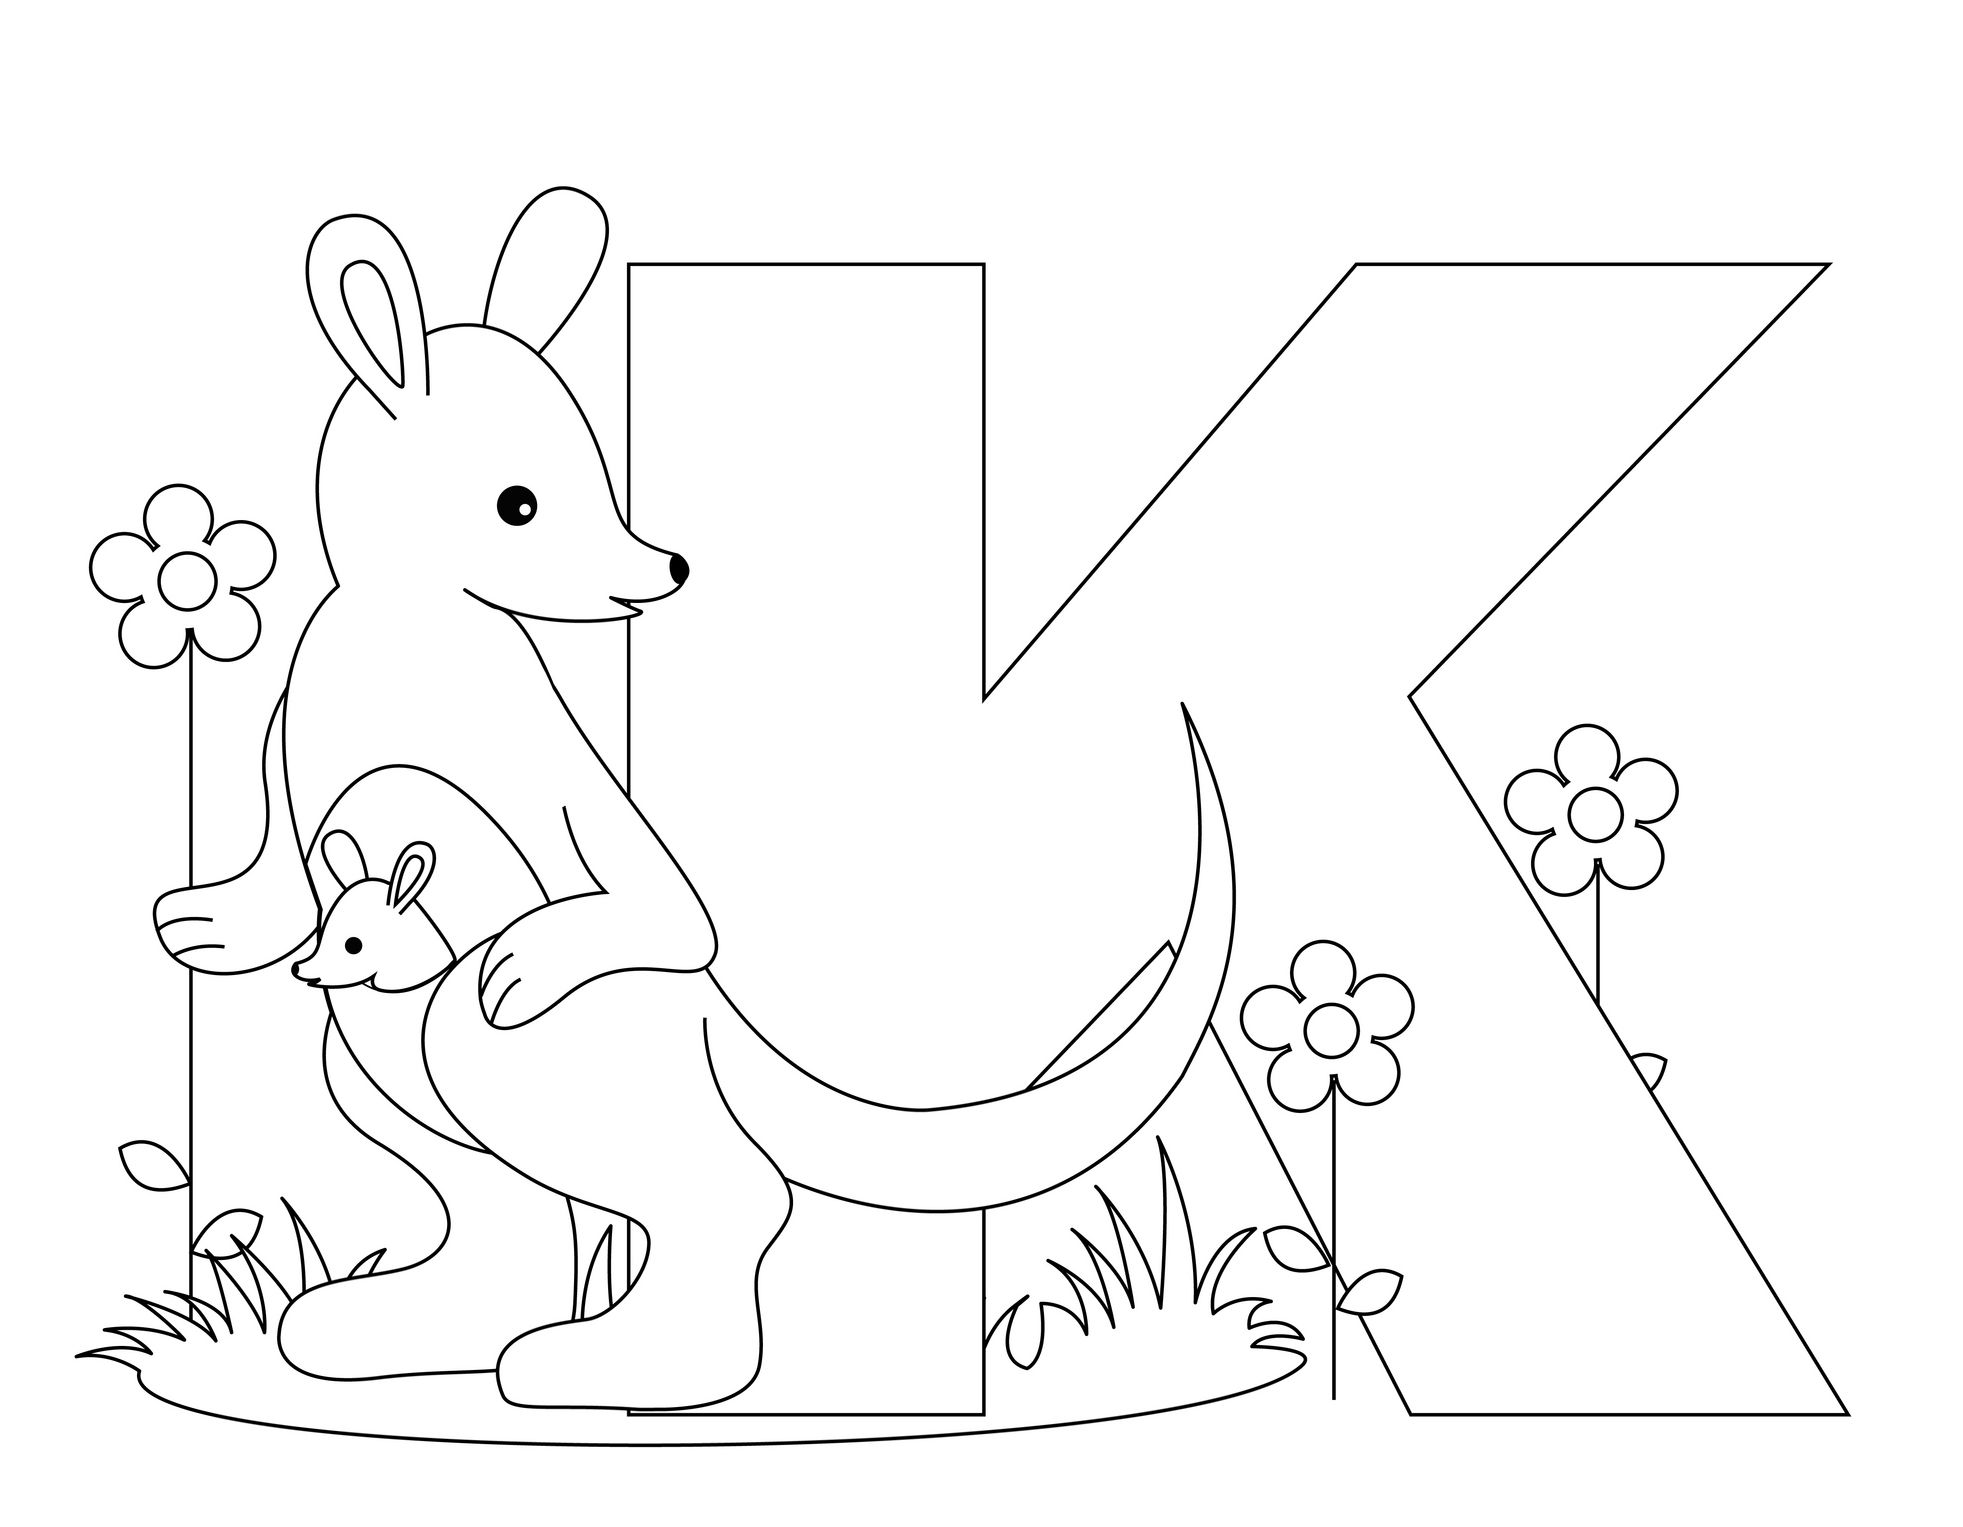 Pre k coloring pages alphabet - Free Kindergarten Alphabet Worksheets Animal Alphabet Letter K Coloring Worksheet From Kiboomu Worksheets